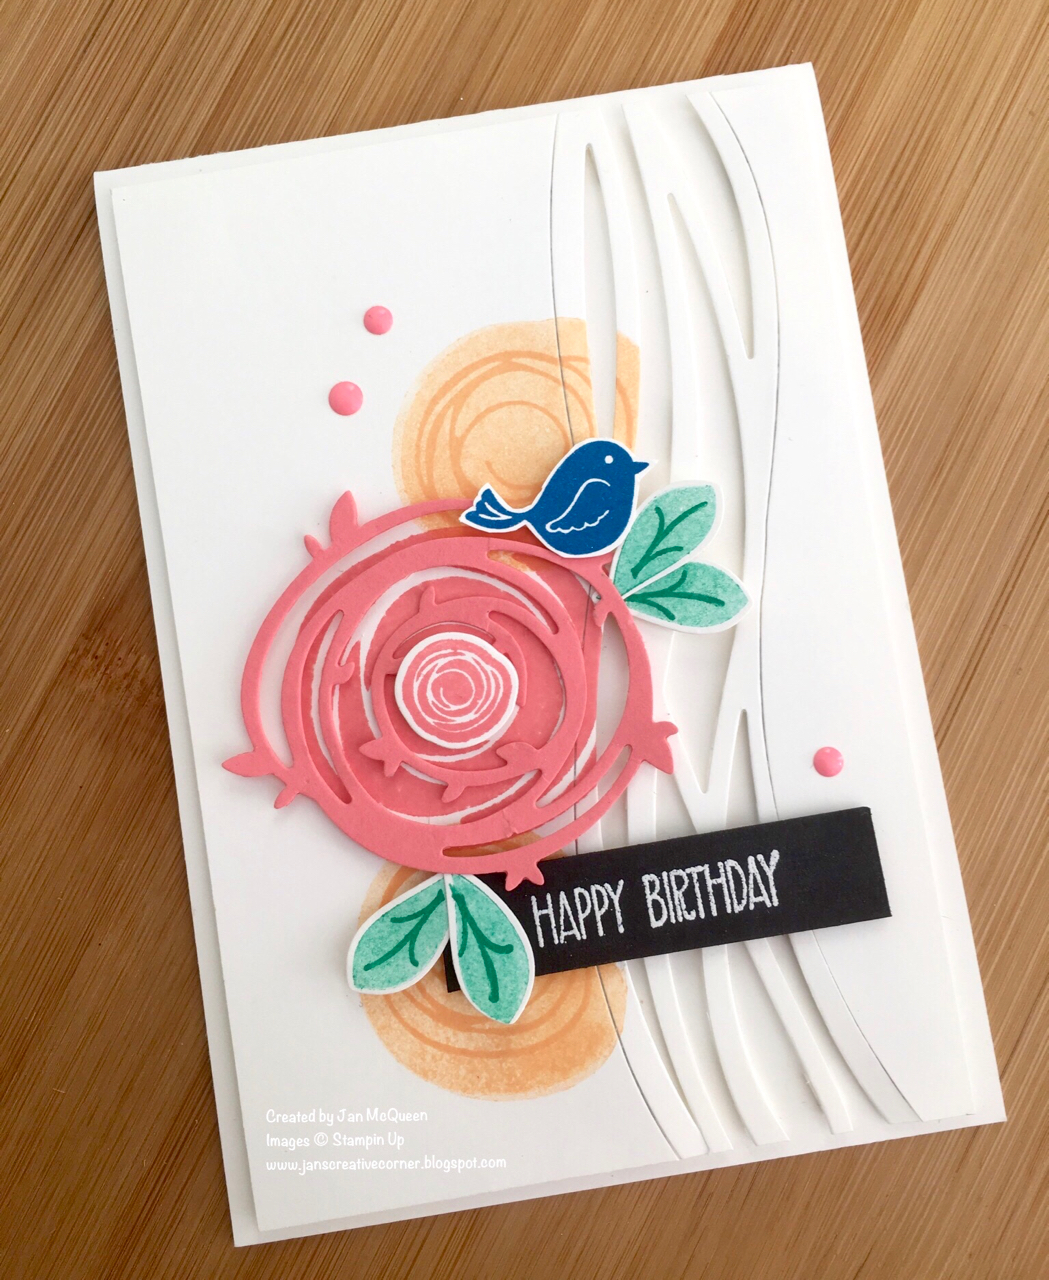 Card stock whisper white thick for the base and top panel and